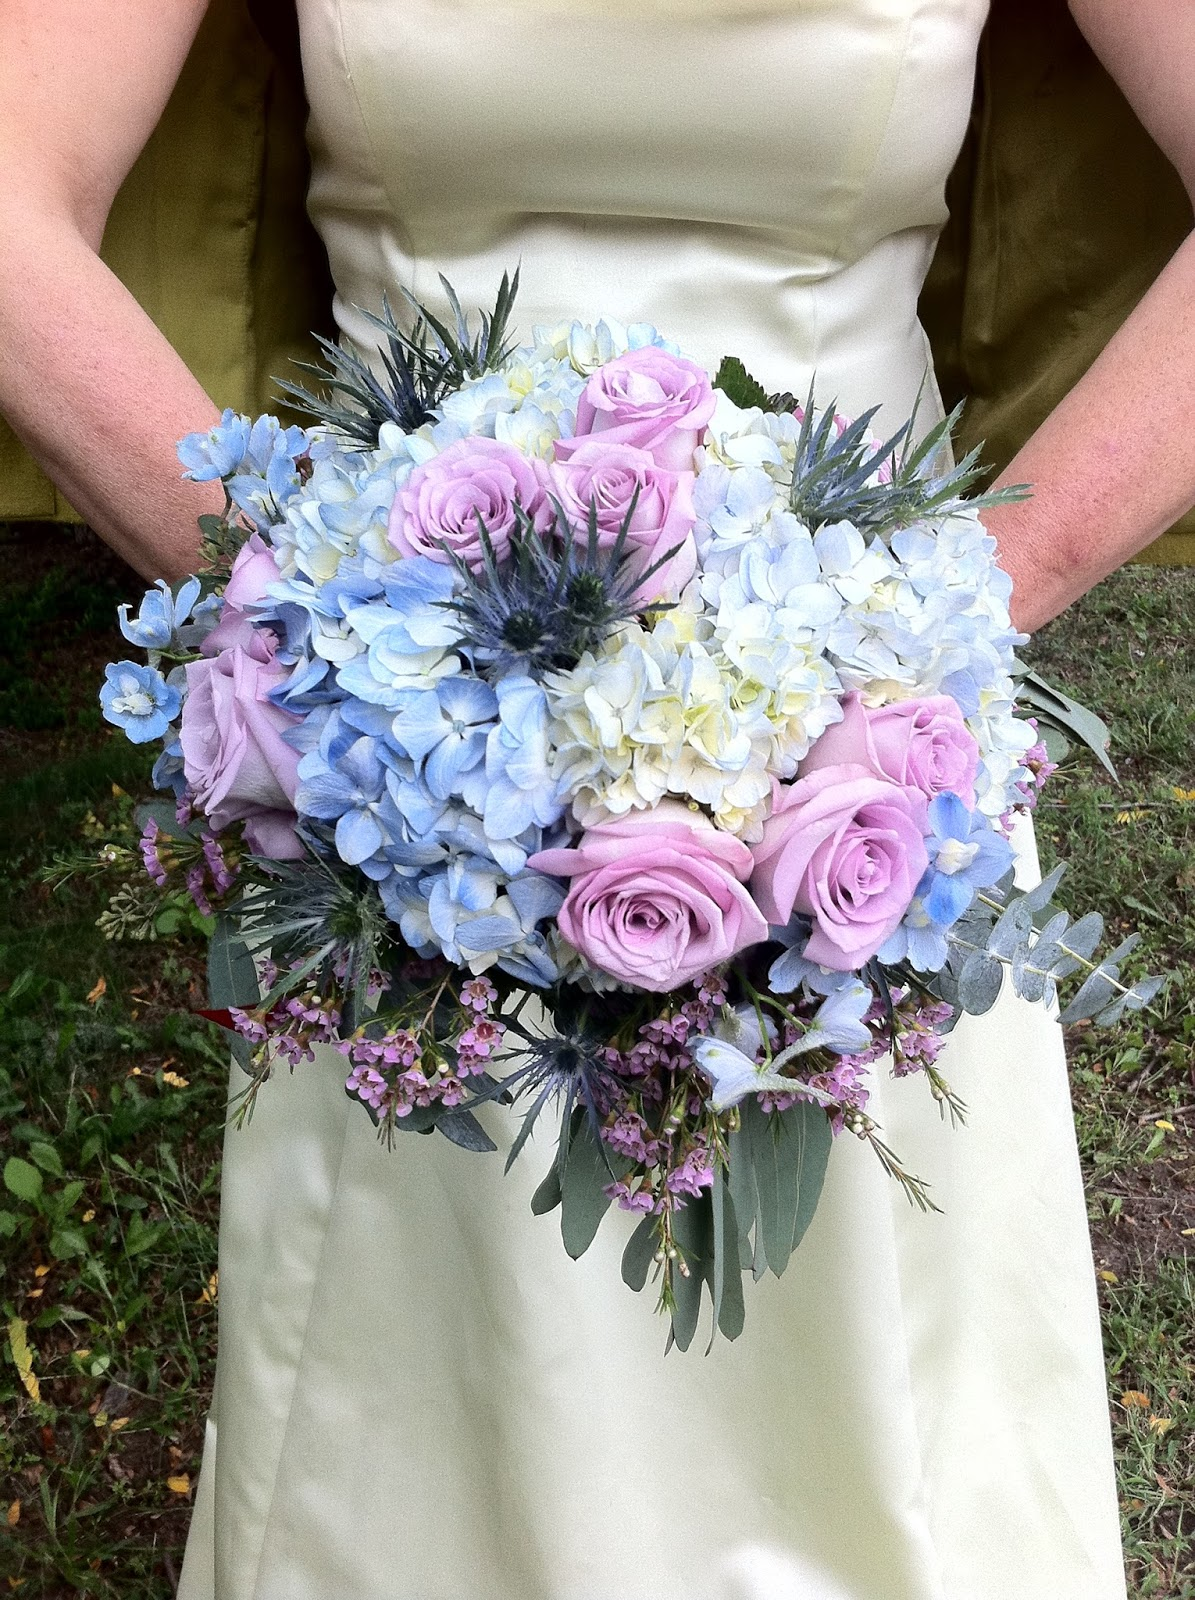 Blue And Lavender Rose Hydrangea Wedding Bridal Bouquet By Stein Your Florist Co